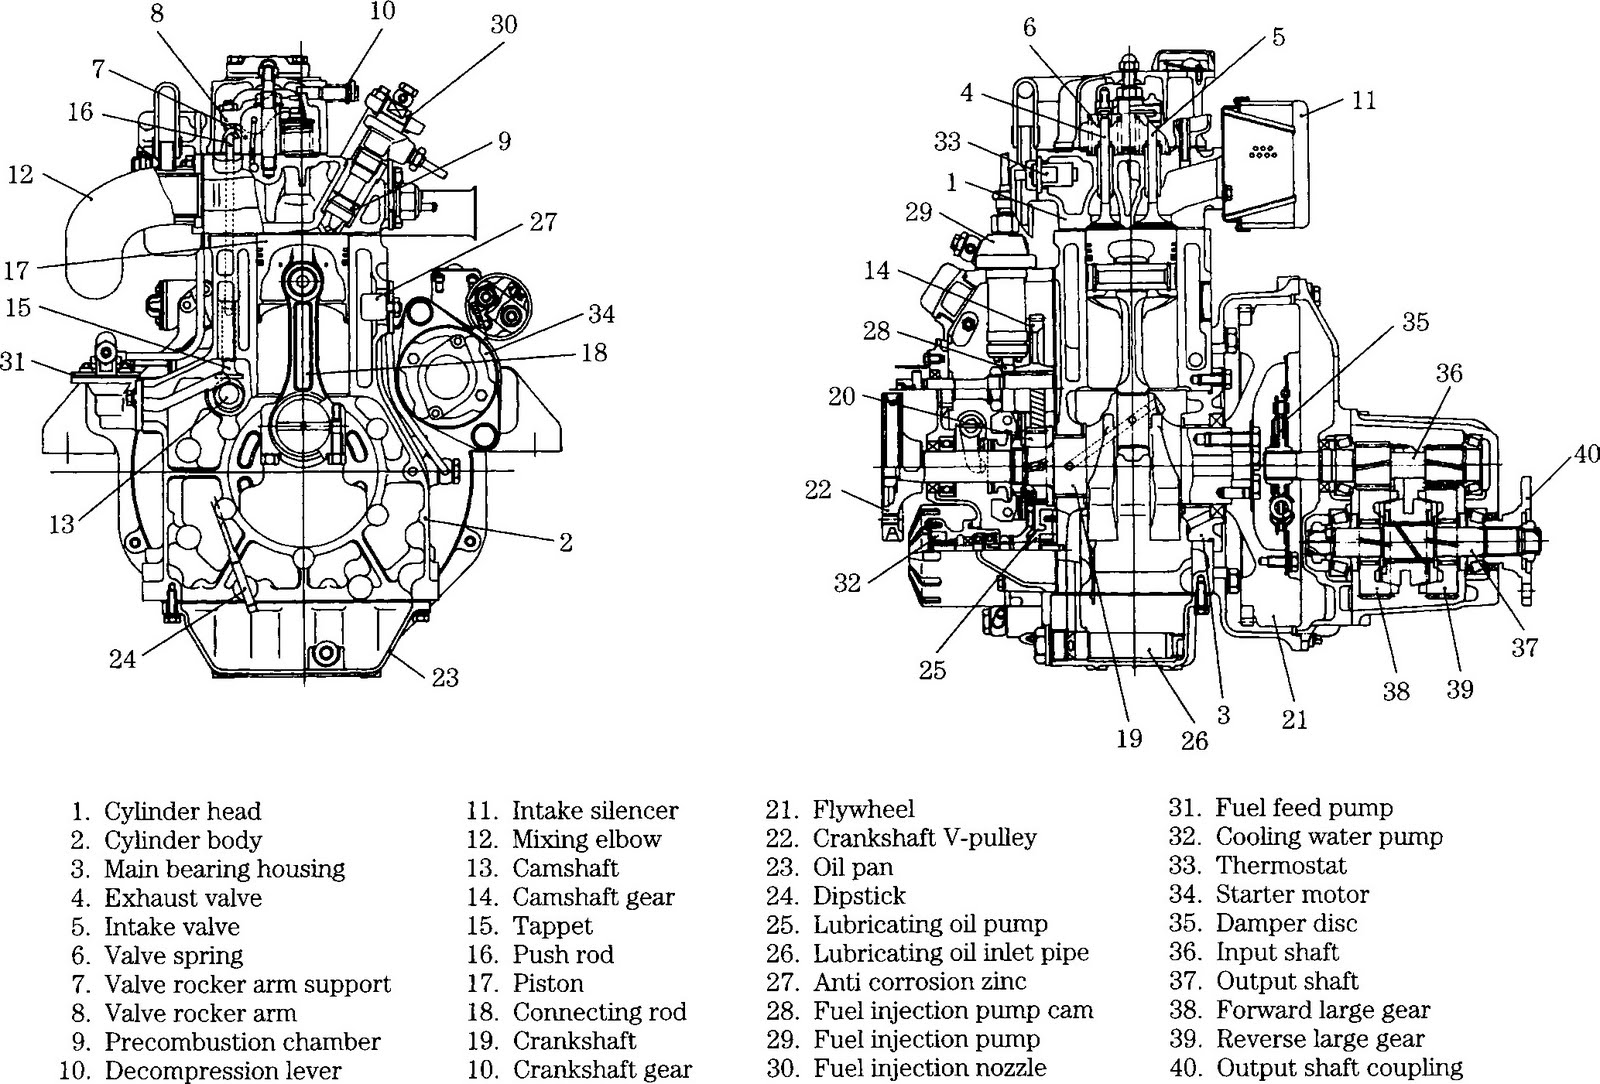 Troubleshooting and Repairing Diesel Engines: April 2011